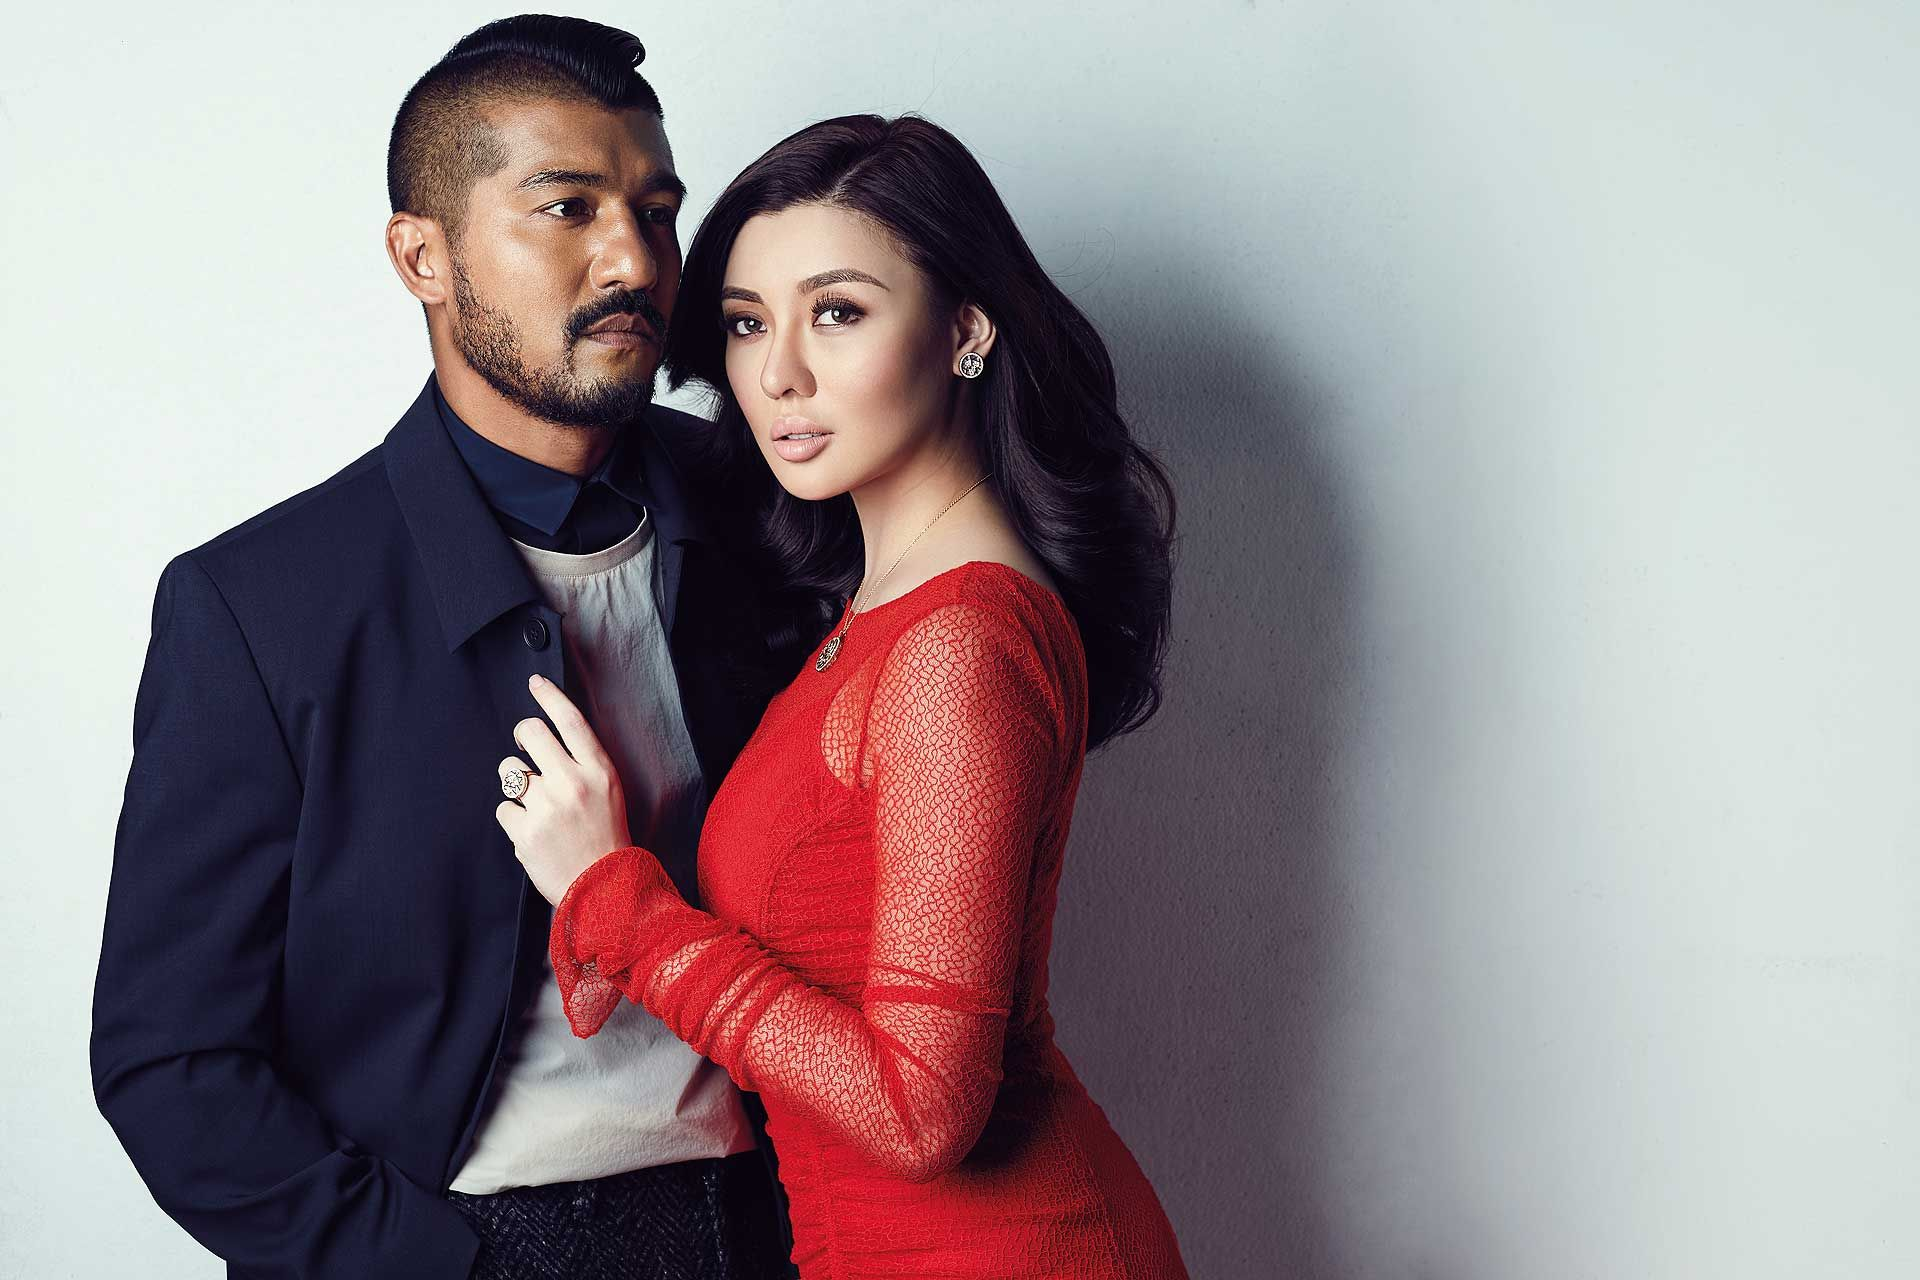 Serial Entrepreneur Roen Cian Nagapan And Influencer Carey Ng Open Up About Life After 'I Do'